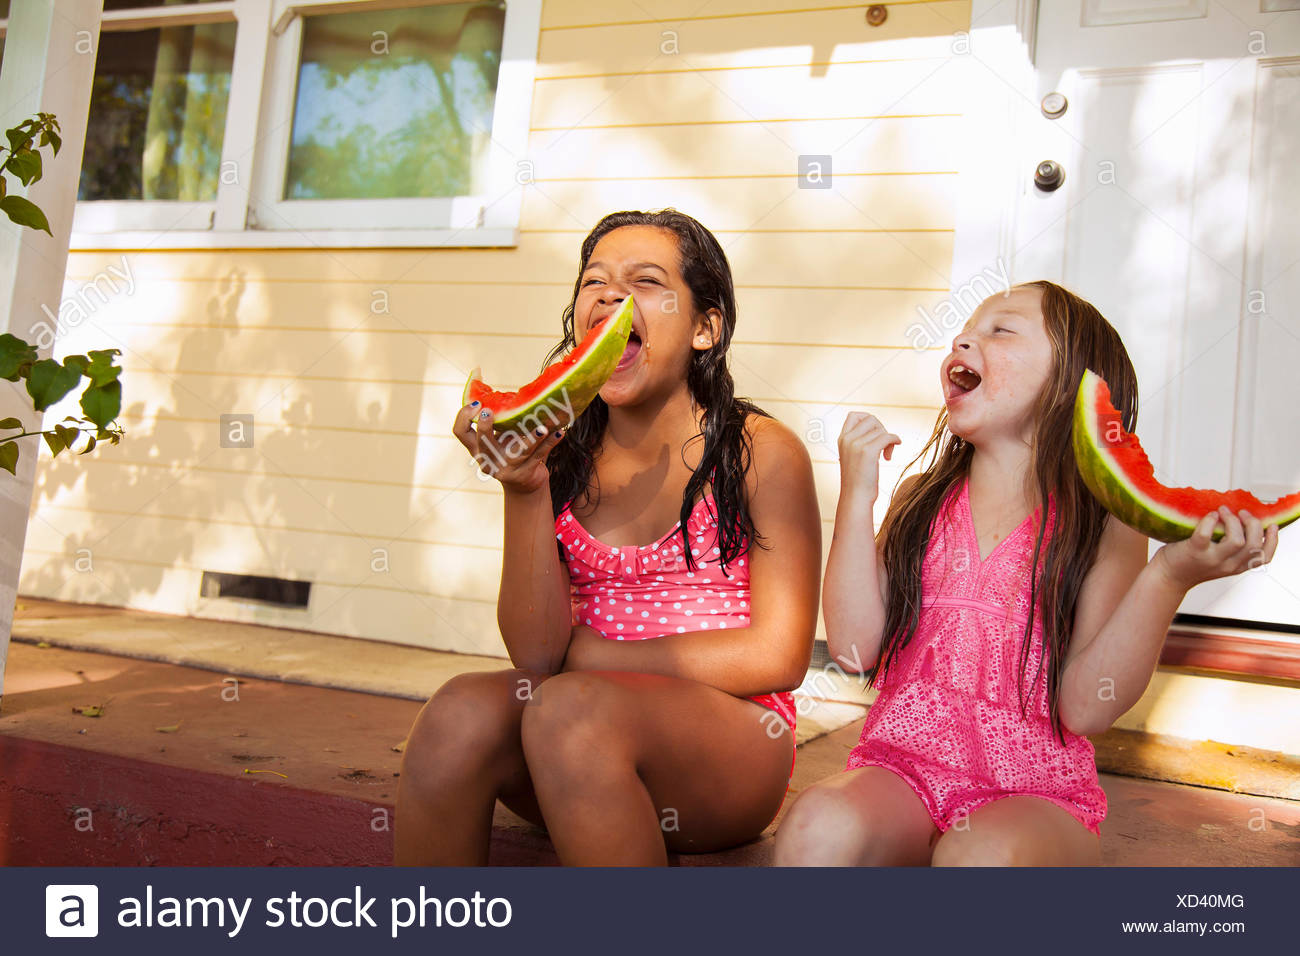 Two laughing girls sitting on house porch with slices of watermelon - Stock Image